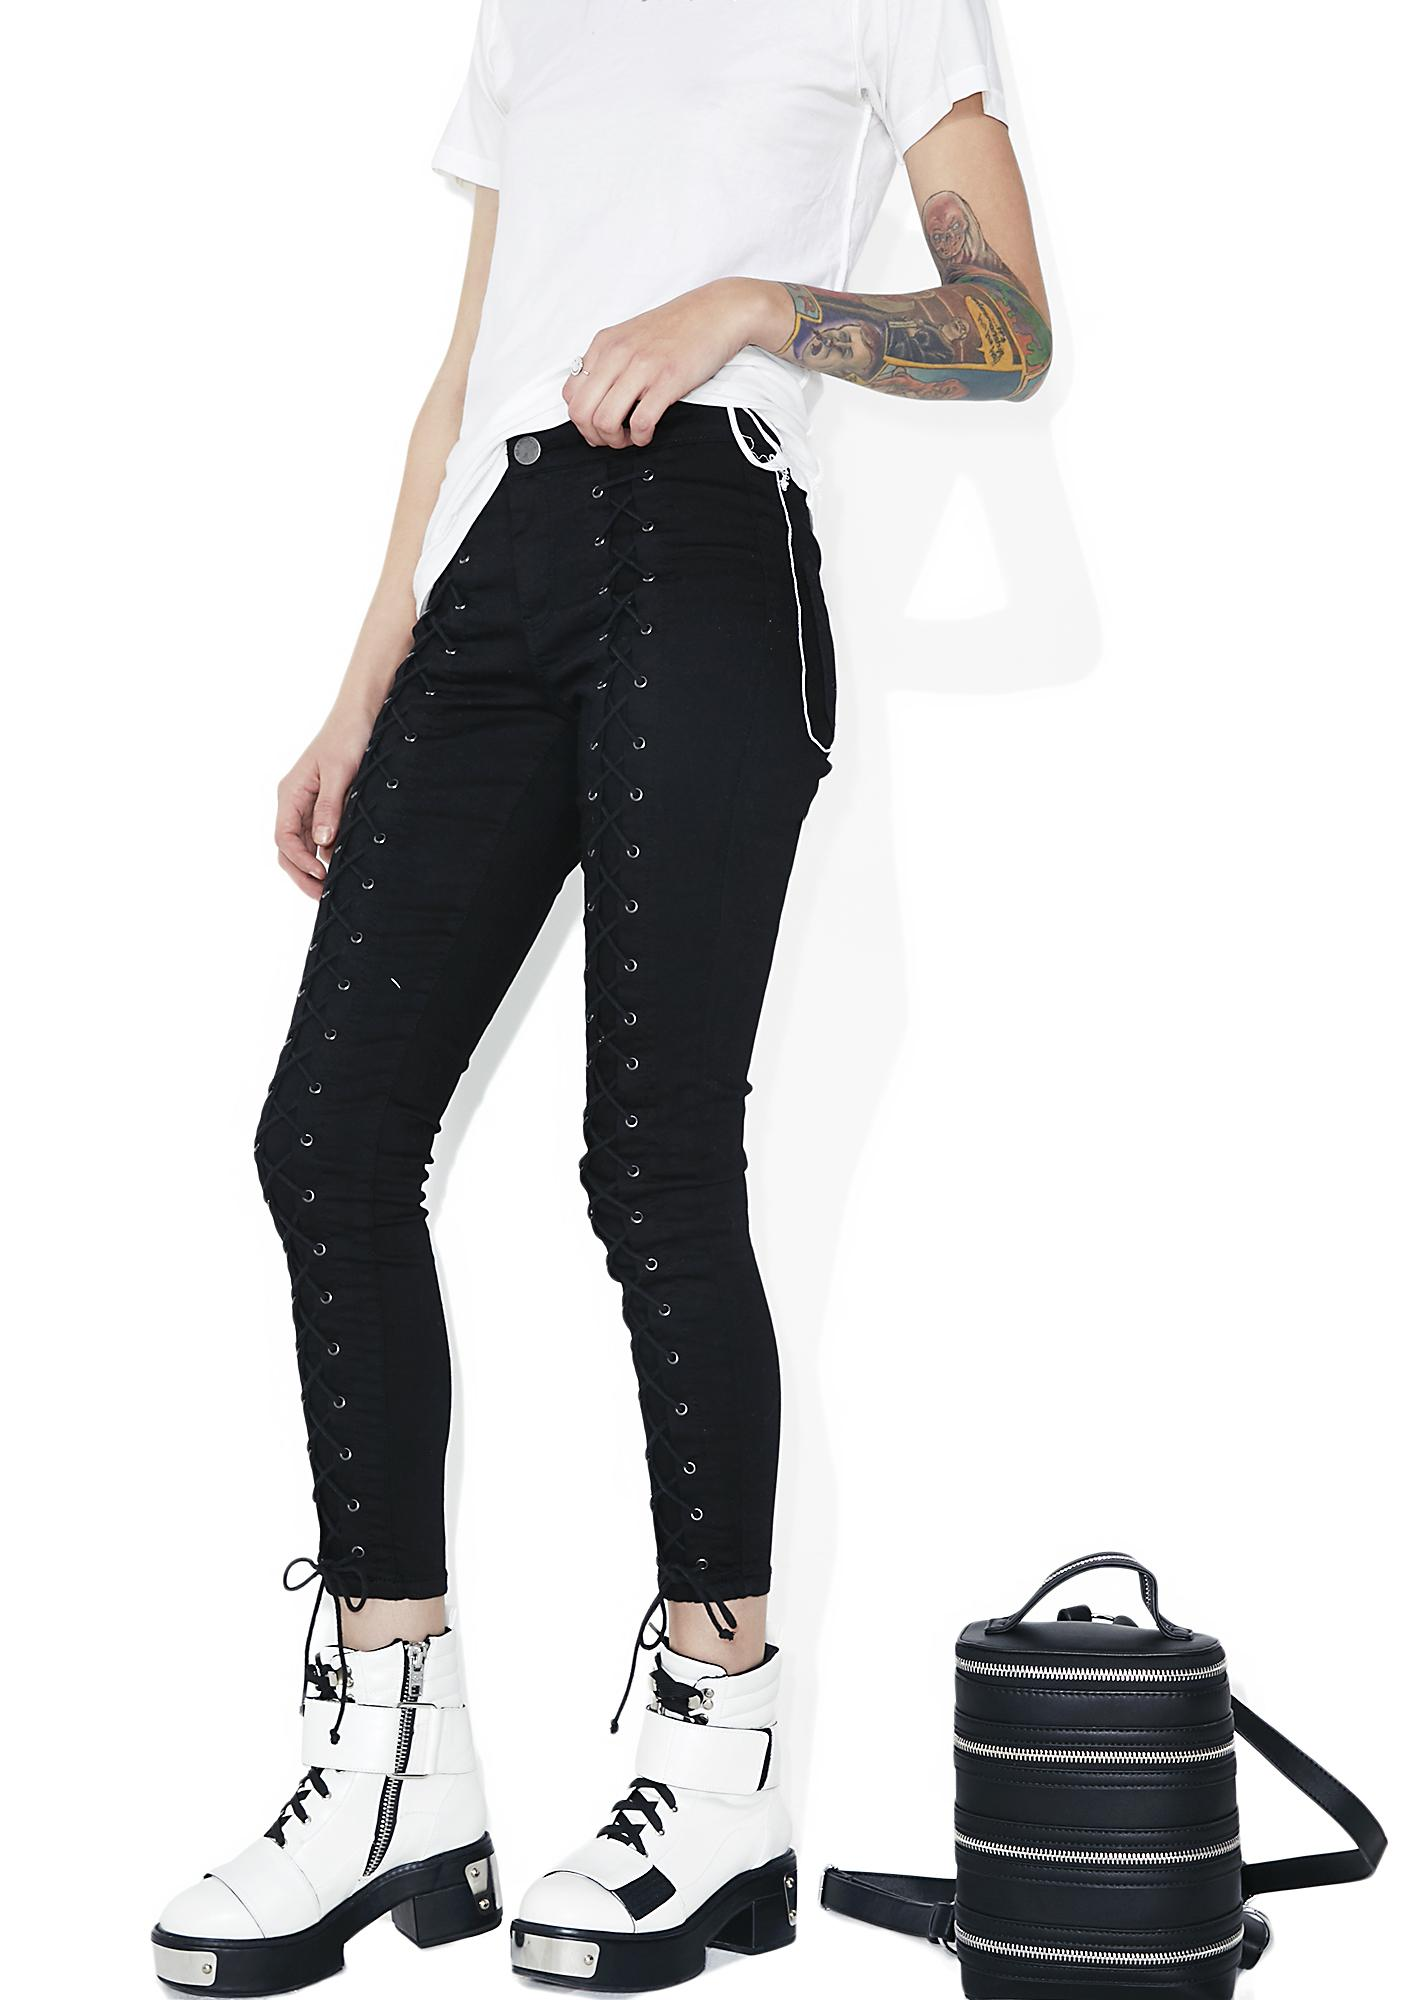 Glamorous Casbah Lace-Up Skinny Jeans